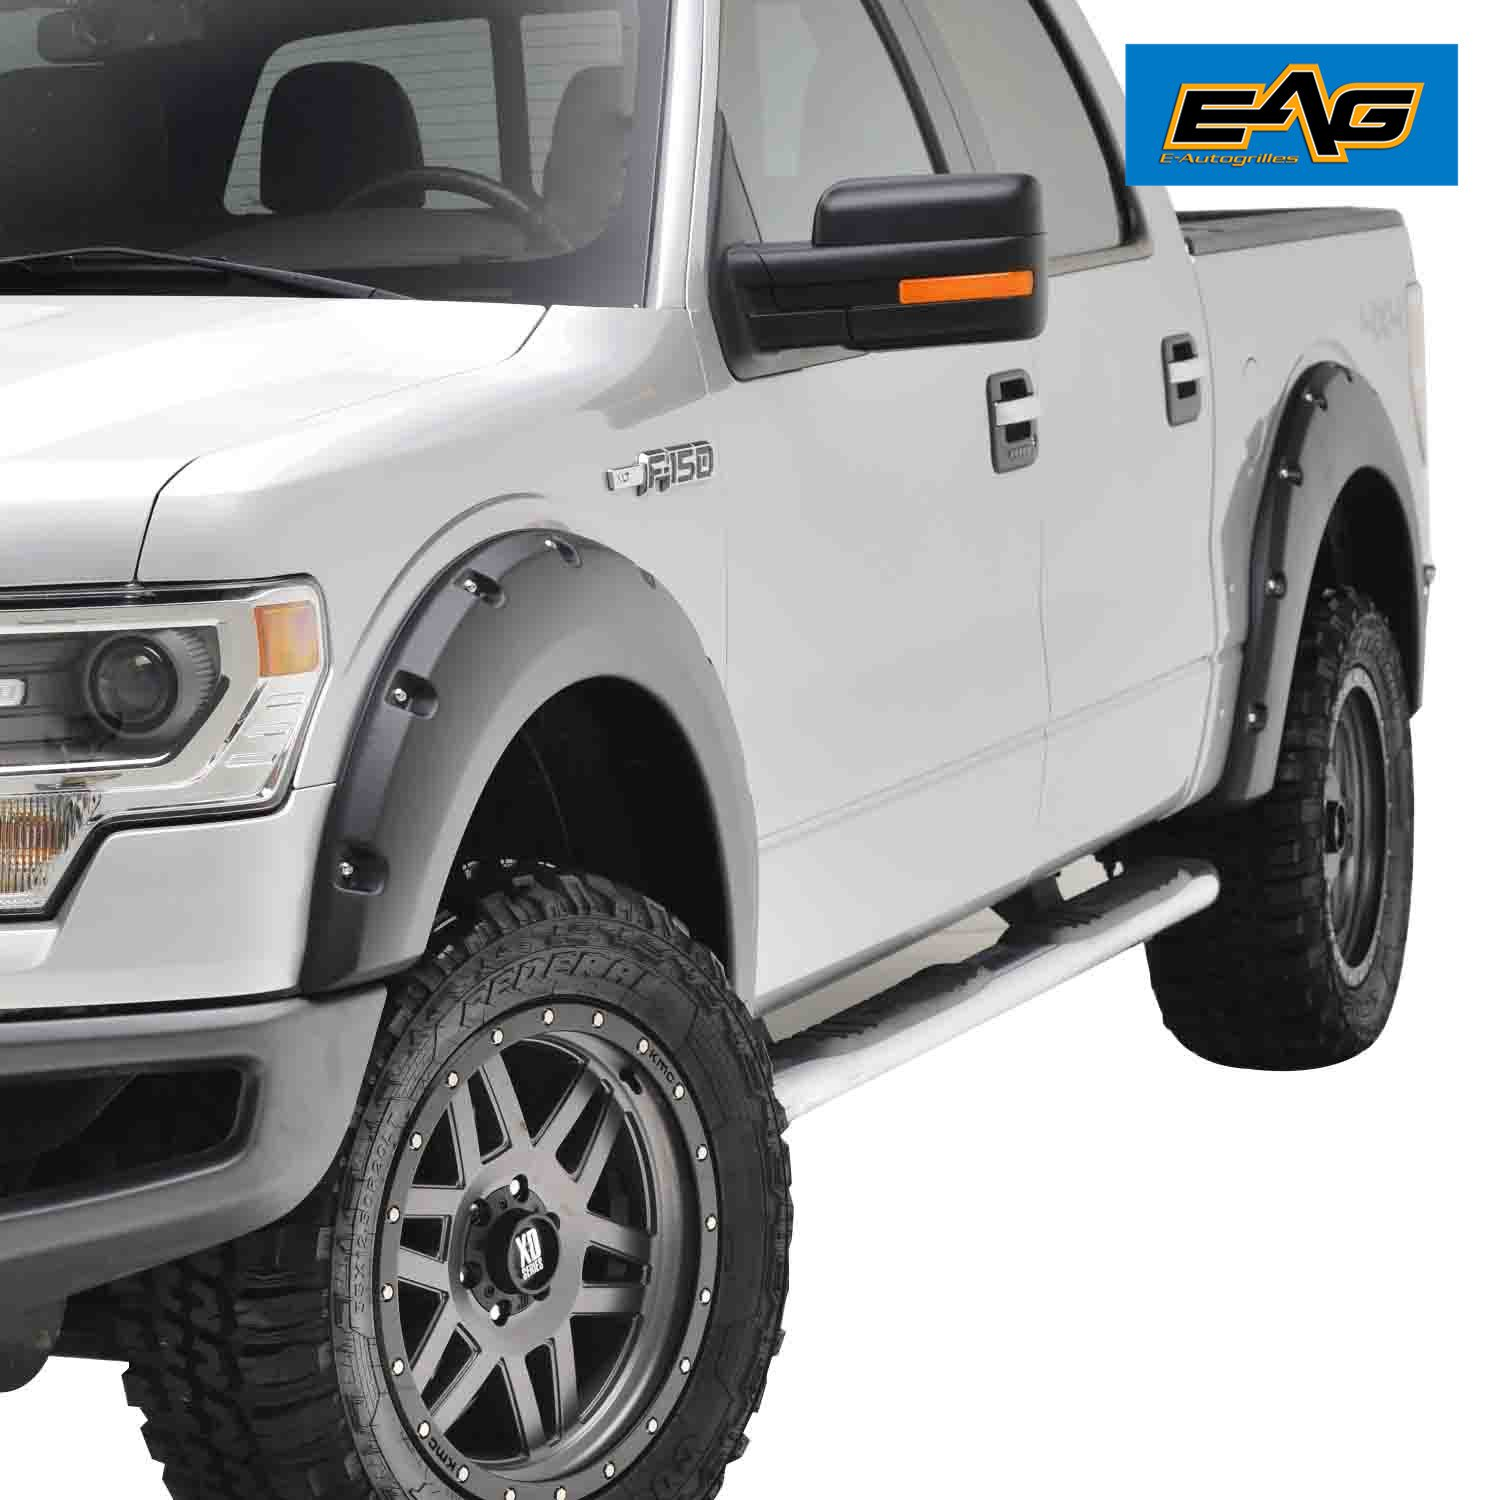 Eag 09 14 ford f150 styleside bed fender flares 4pcs black textured pocket riveted bolt